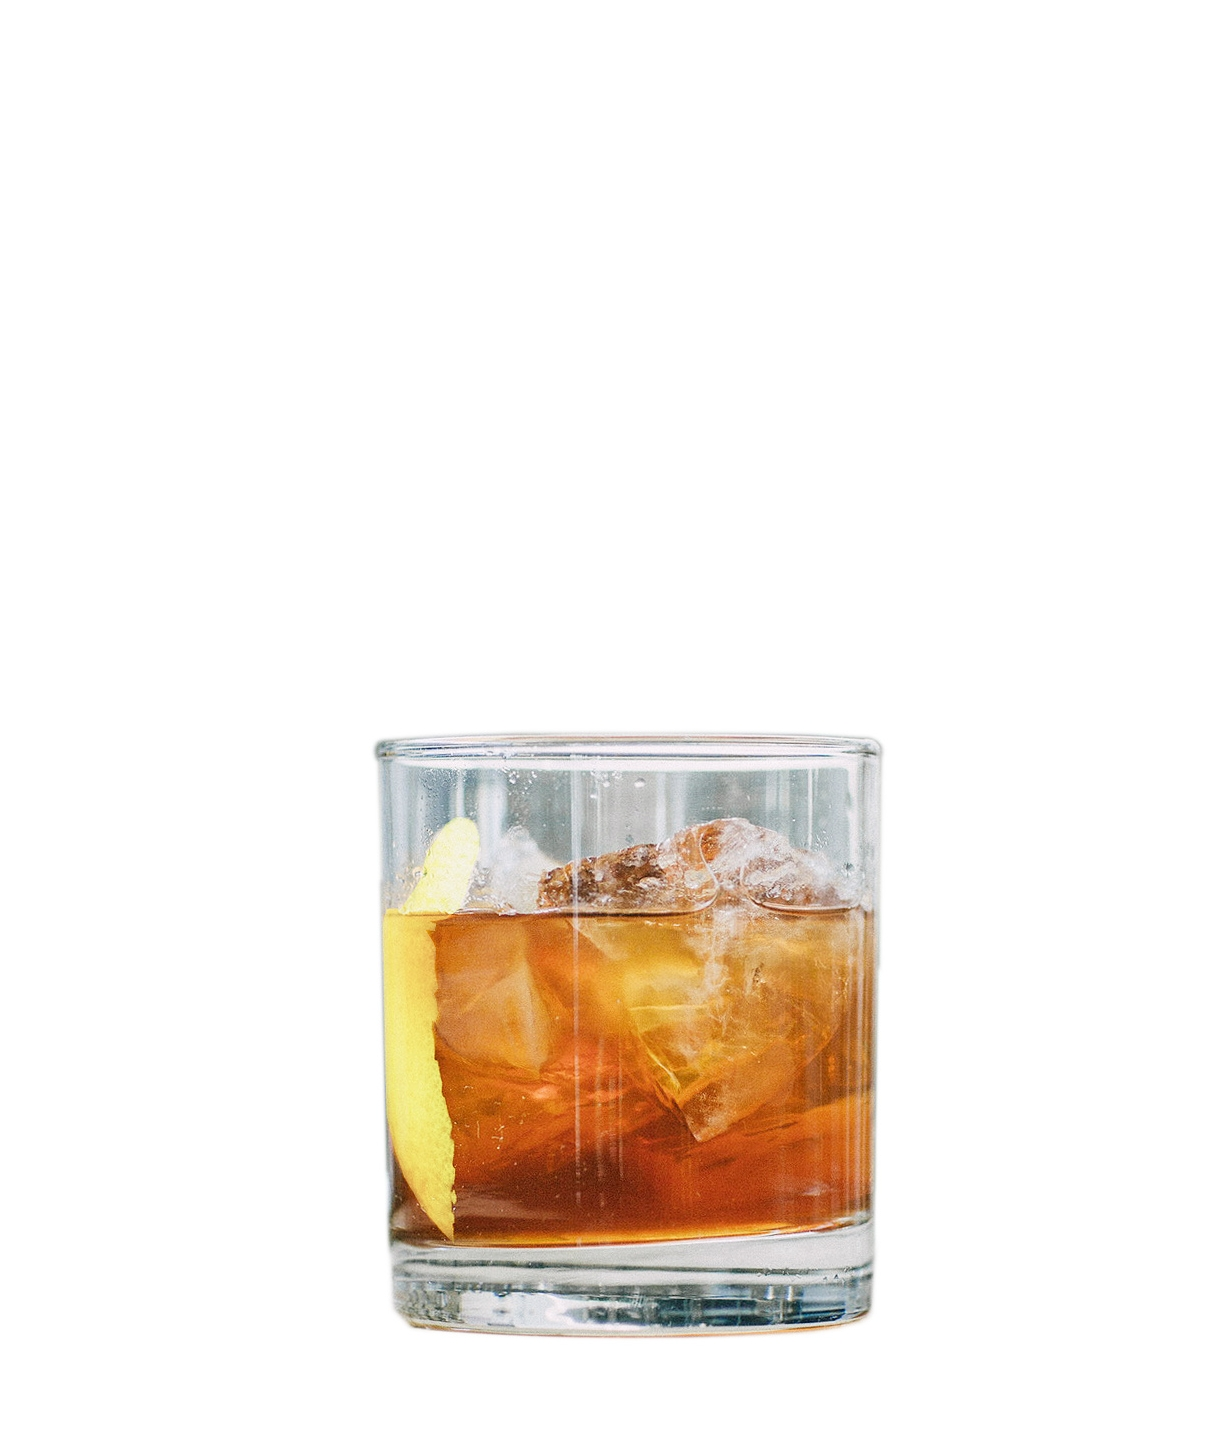 TORONTO  5ml Raw Simple Syrup* 10ml Norseman Fernet Amaro 60ml Norseman Aquavit  Build ingredients on ice in a low glass. Garnish with a lemon coin.  *Raw Simple Syrup: simmer two parts raw sugar to one part water stirring until clear.